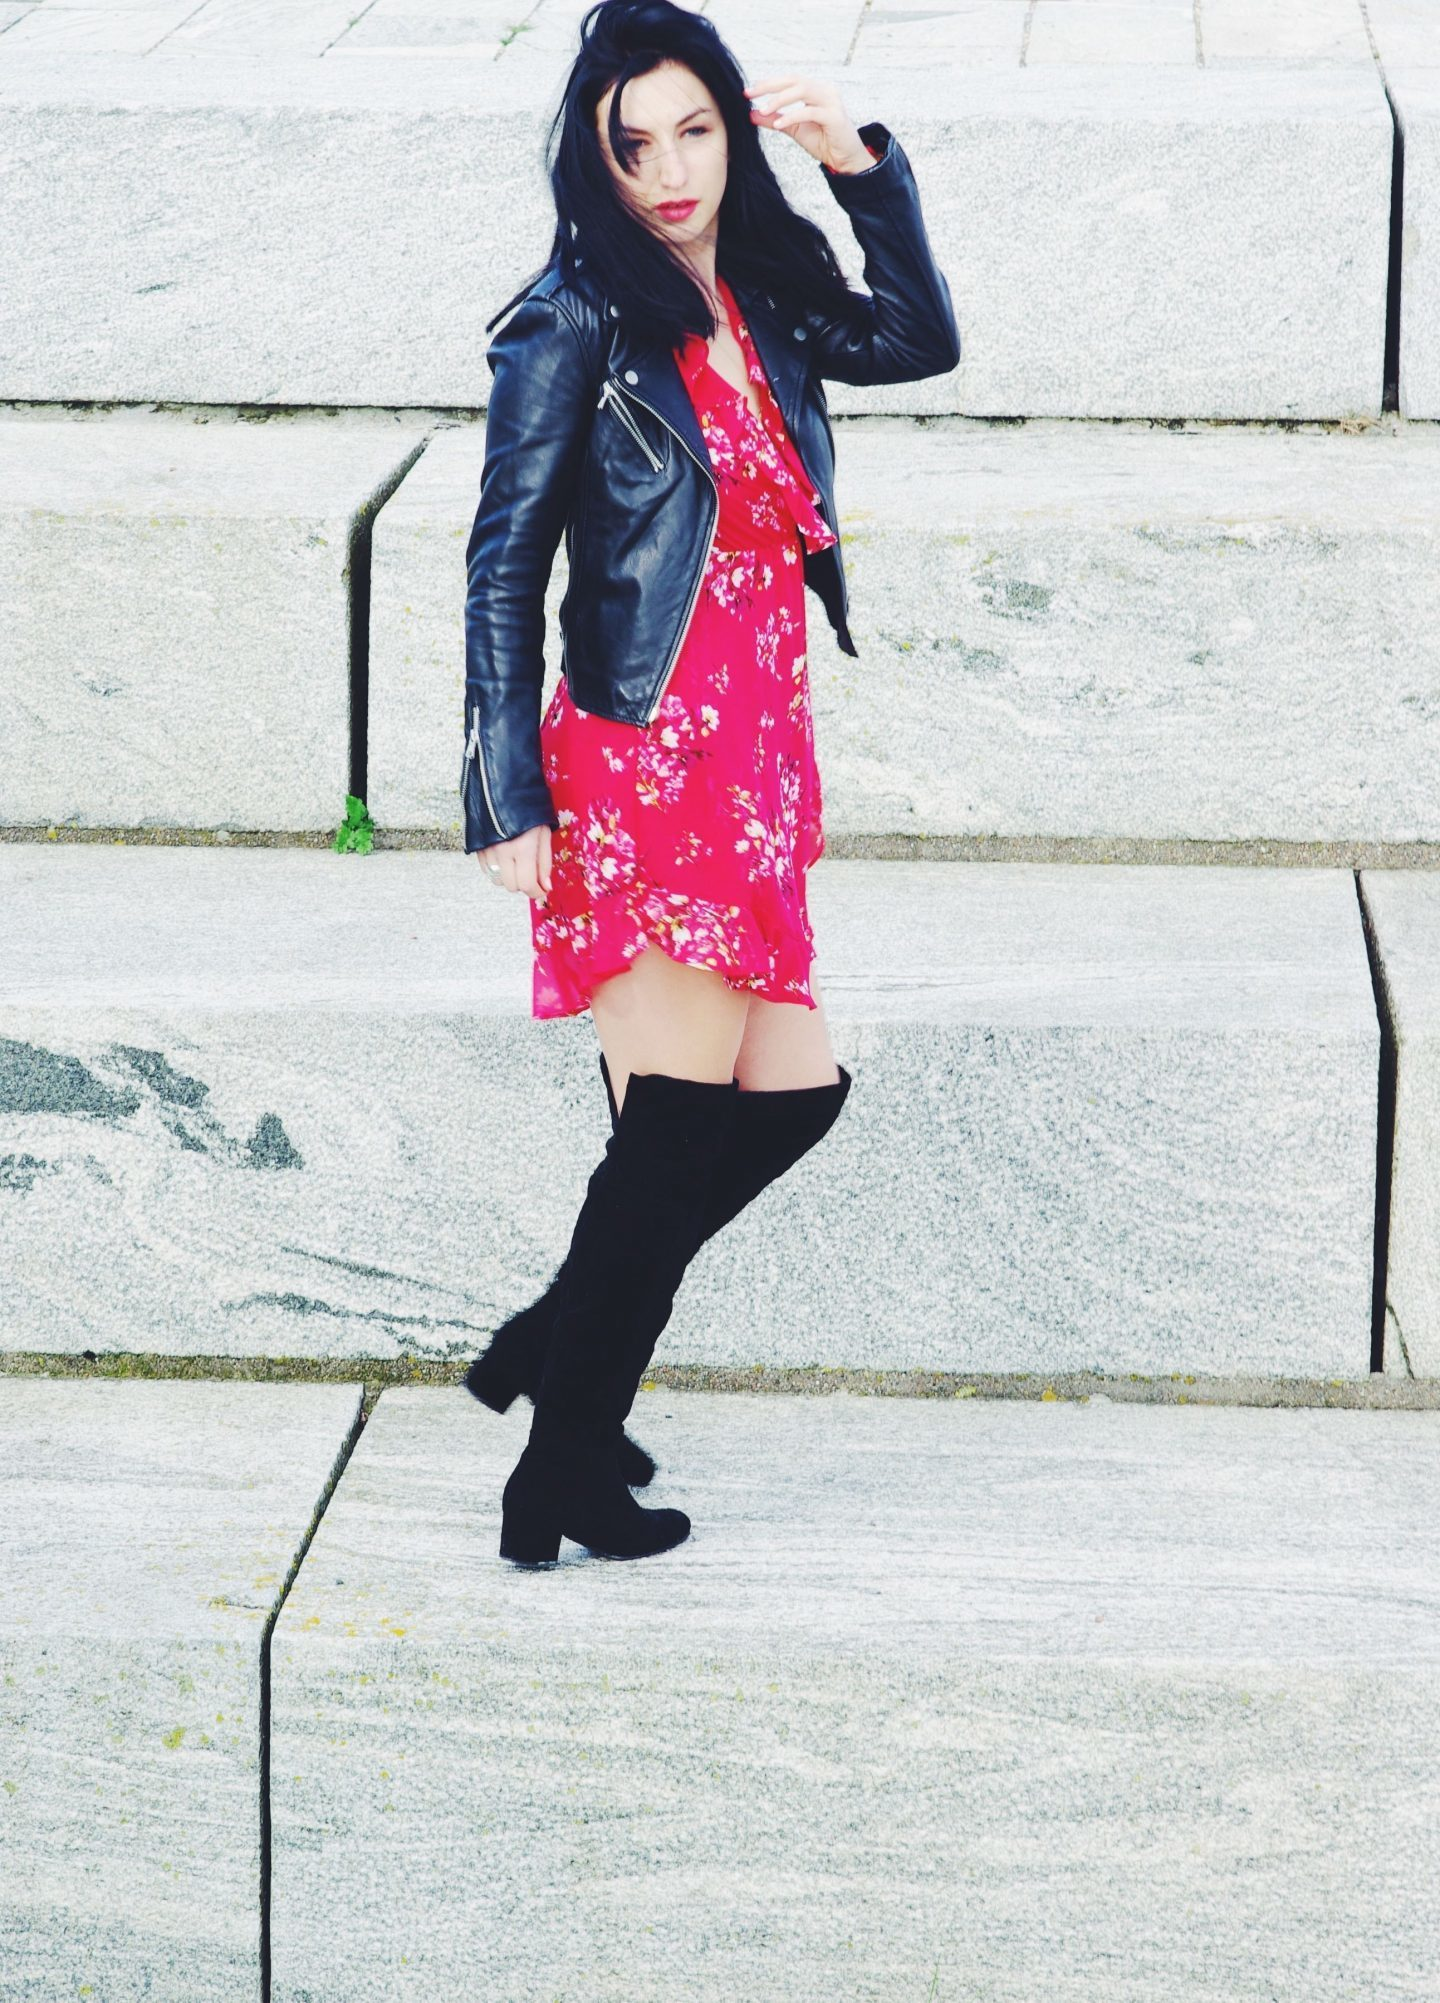 floral-dress-from-hm-spicy-up-your-monday-